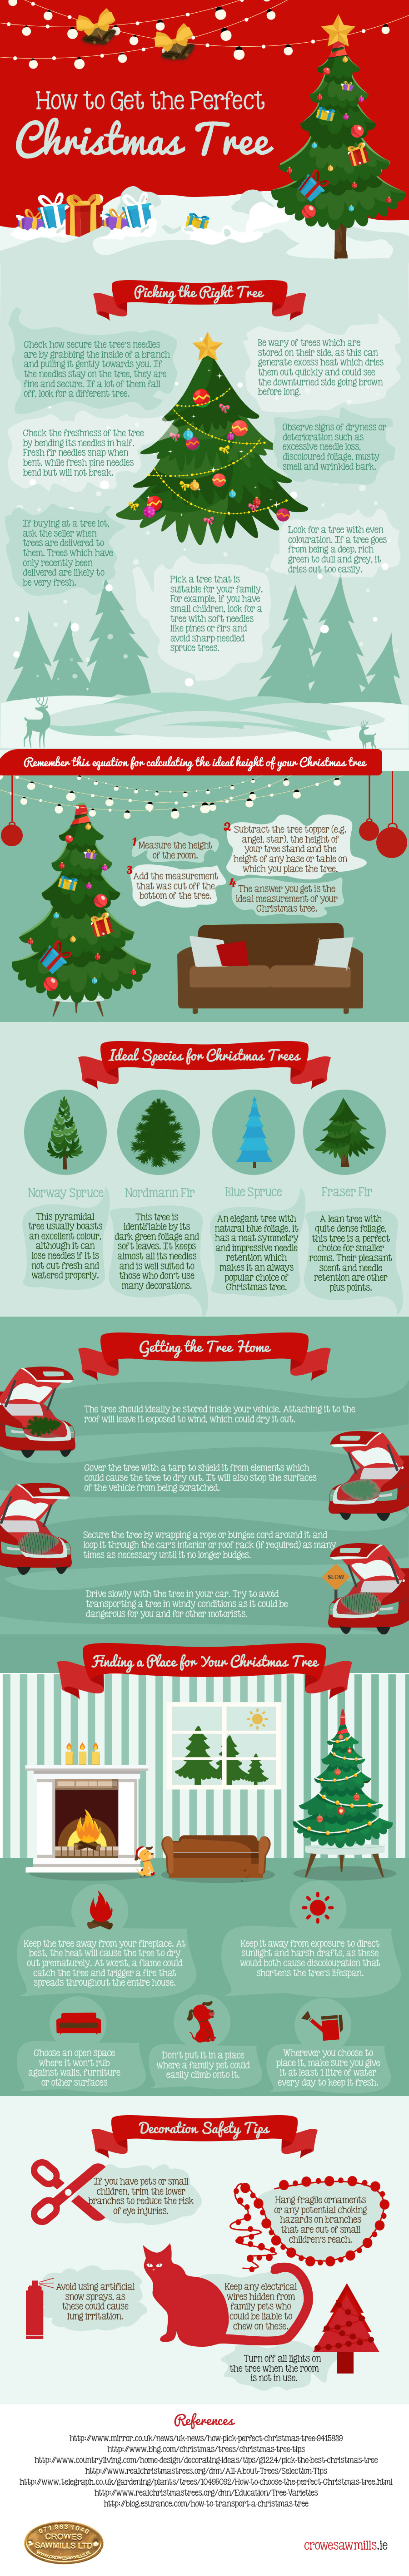 Picking the Perfect Christmas Tree [Infographic]